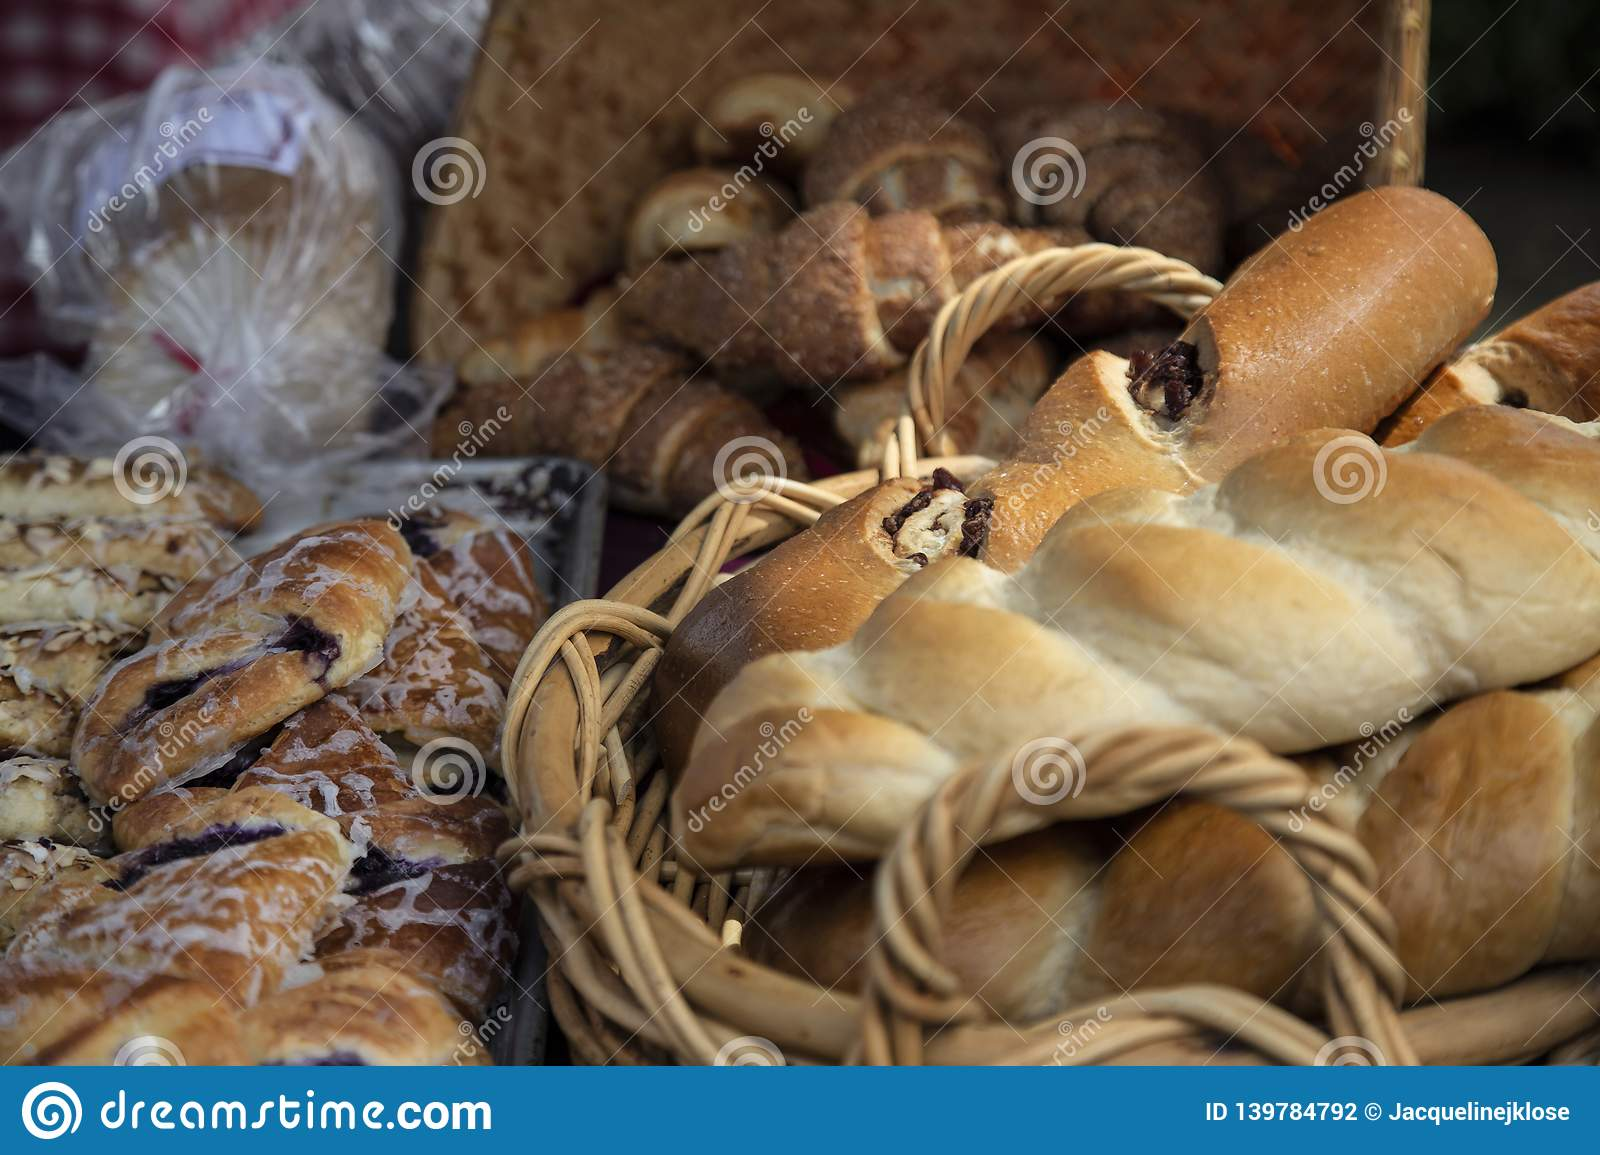 Reshly Baked Organic Loaves of Bread in Baskets, Pastries on Bake Pans